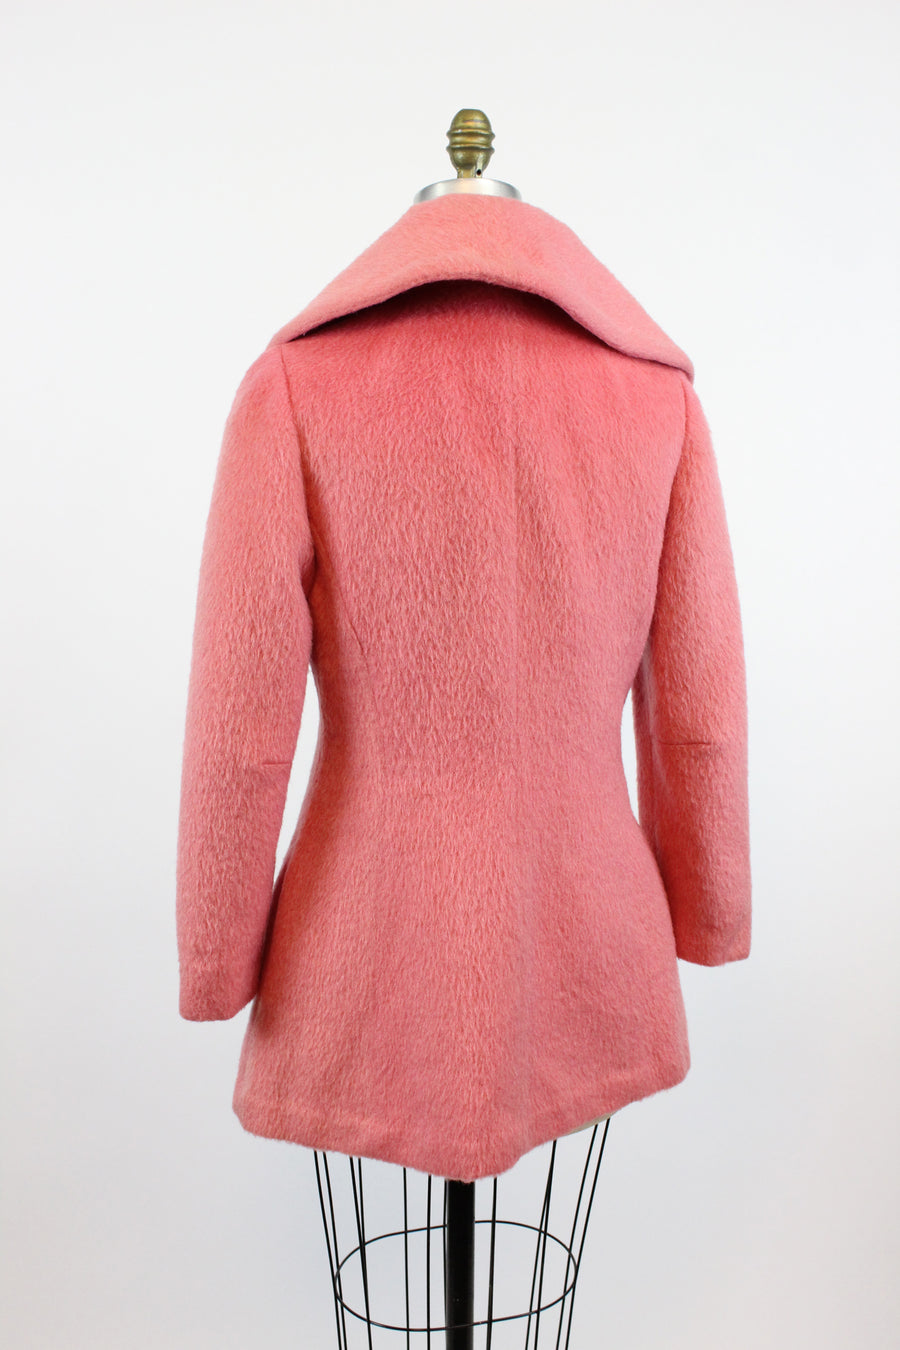 1950s Lilli Ann swing coat pink xs small | vintage jacket | new in